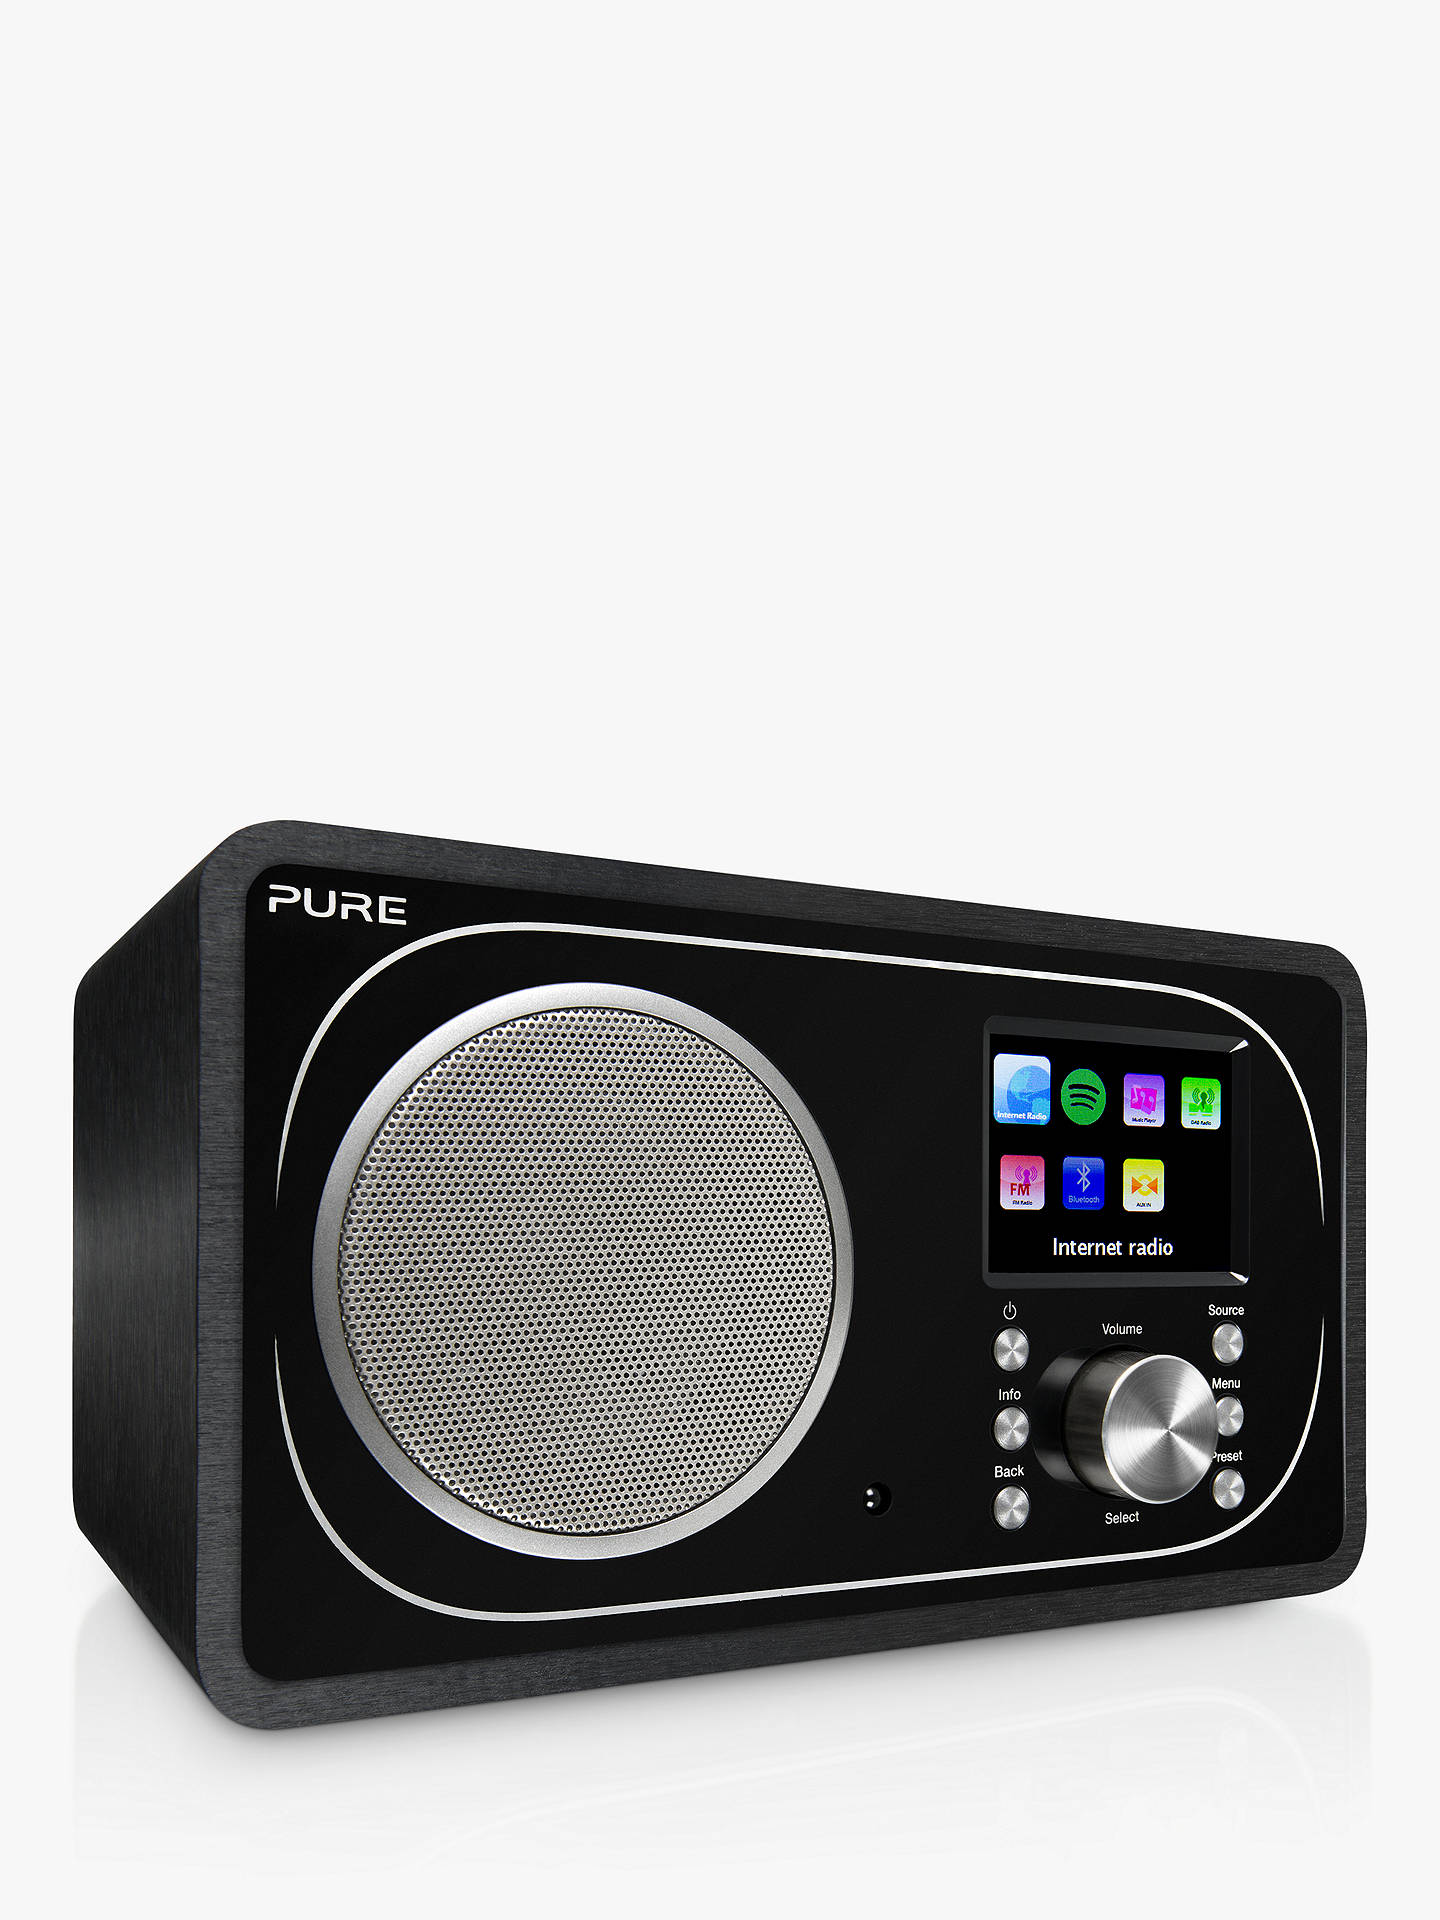 Buy Pure Evoke F3 DAB+/FM Radio With Bluetooth, Wi-Fi & Colour LCD Screen, Black Online at johnlewis.com